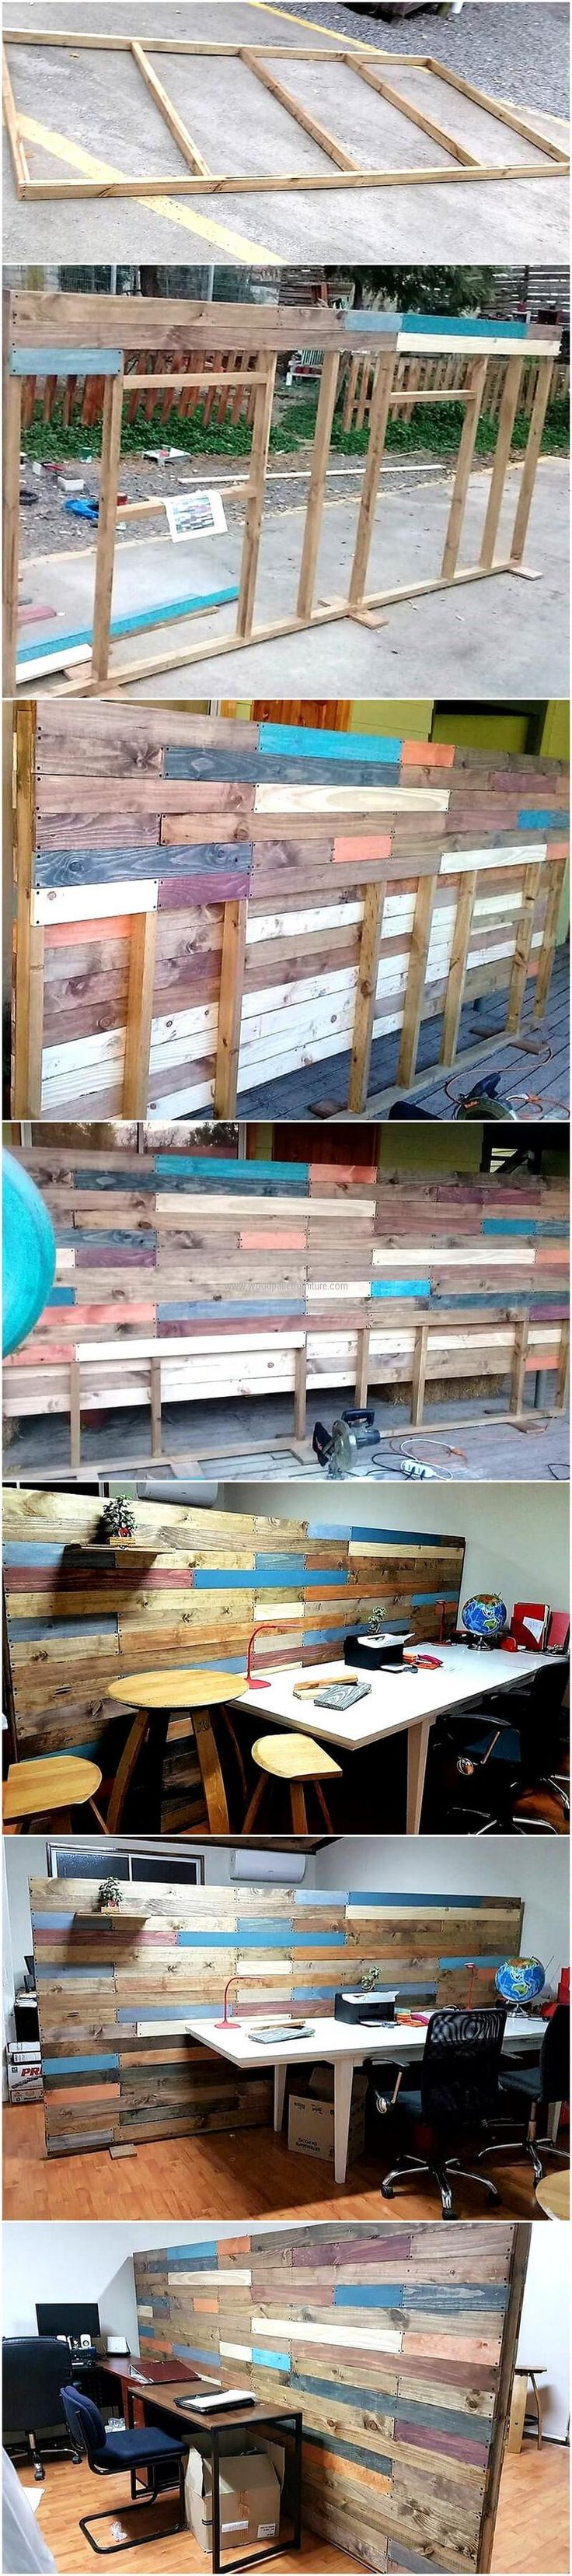 We are starting with an idea that is great to copy for home as well as for the office separation need. This wood pallet room divider and décor idea will work perfect if it is copied for the separation of employee's space in an office.